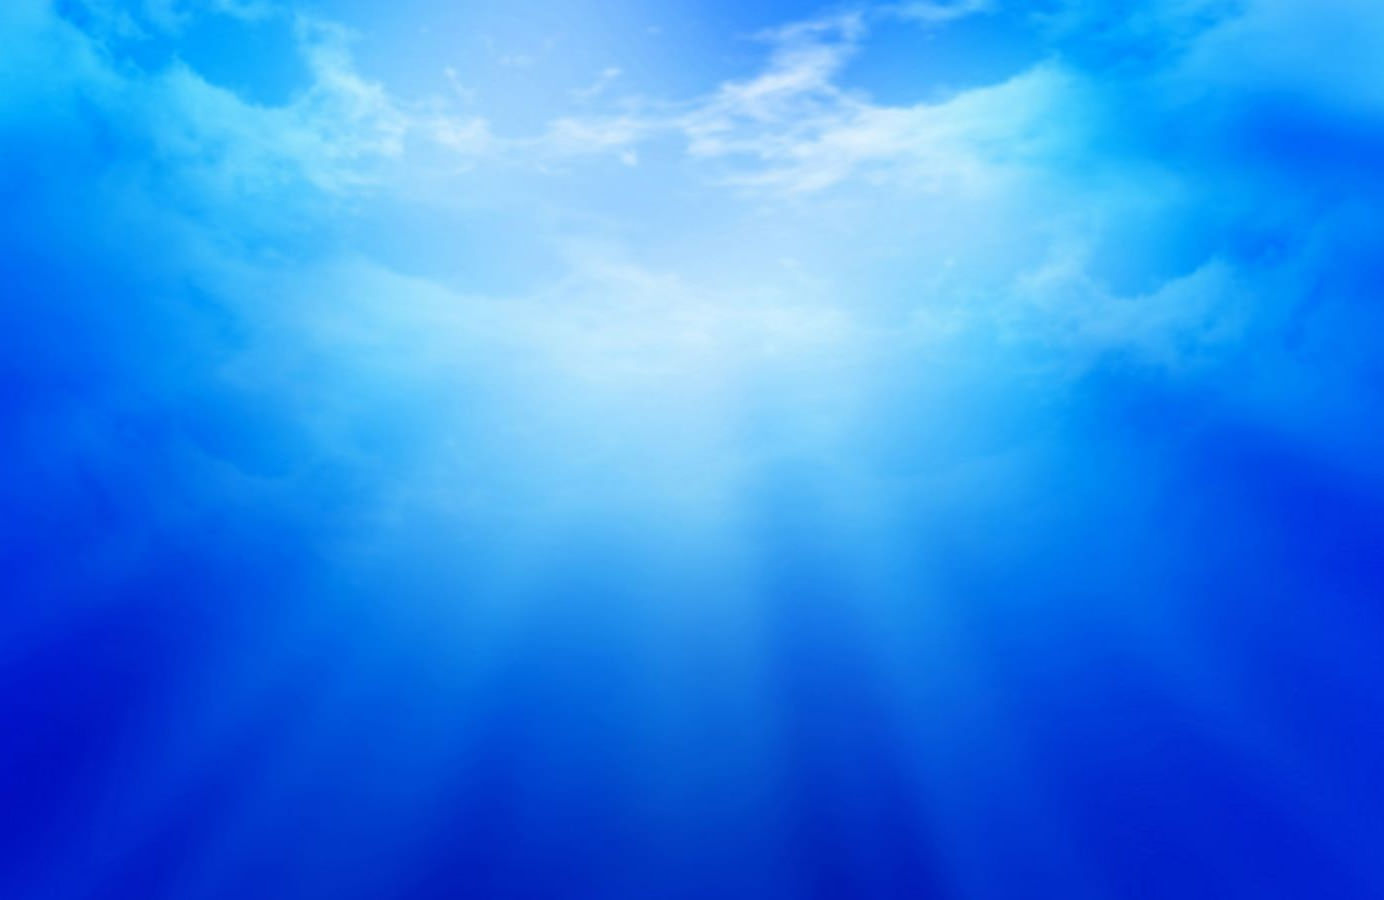 Cool Light Blue Backgrounds Posted By Sarah Walker